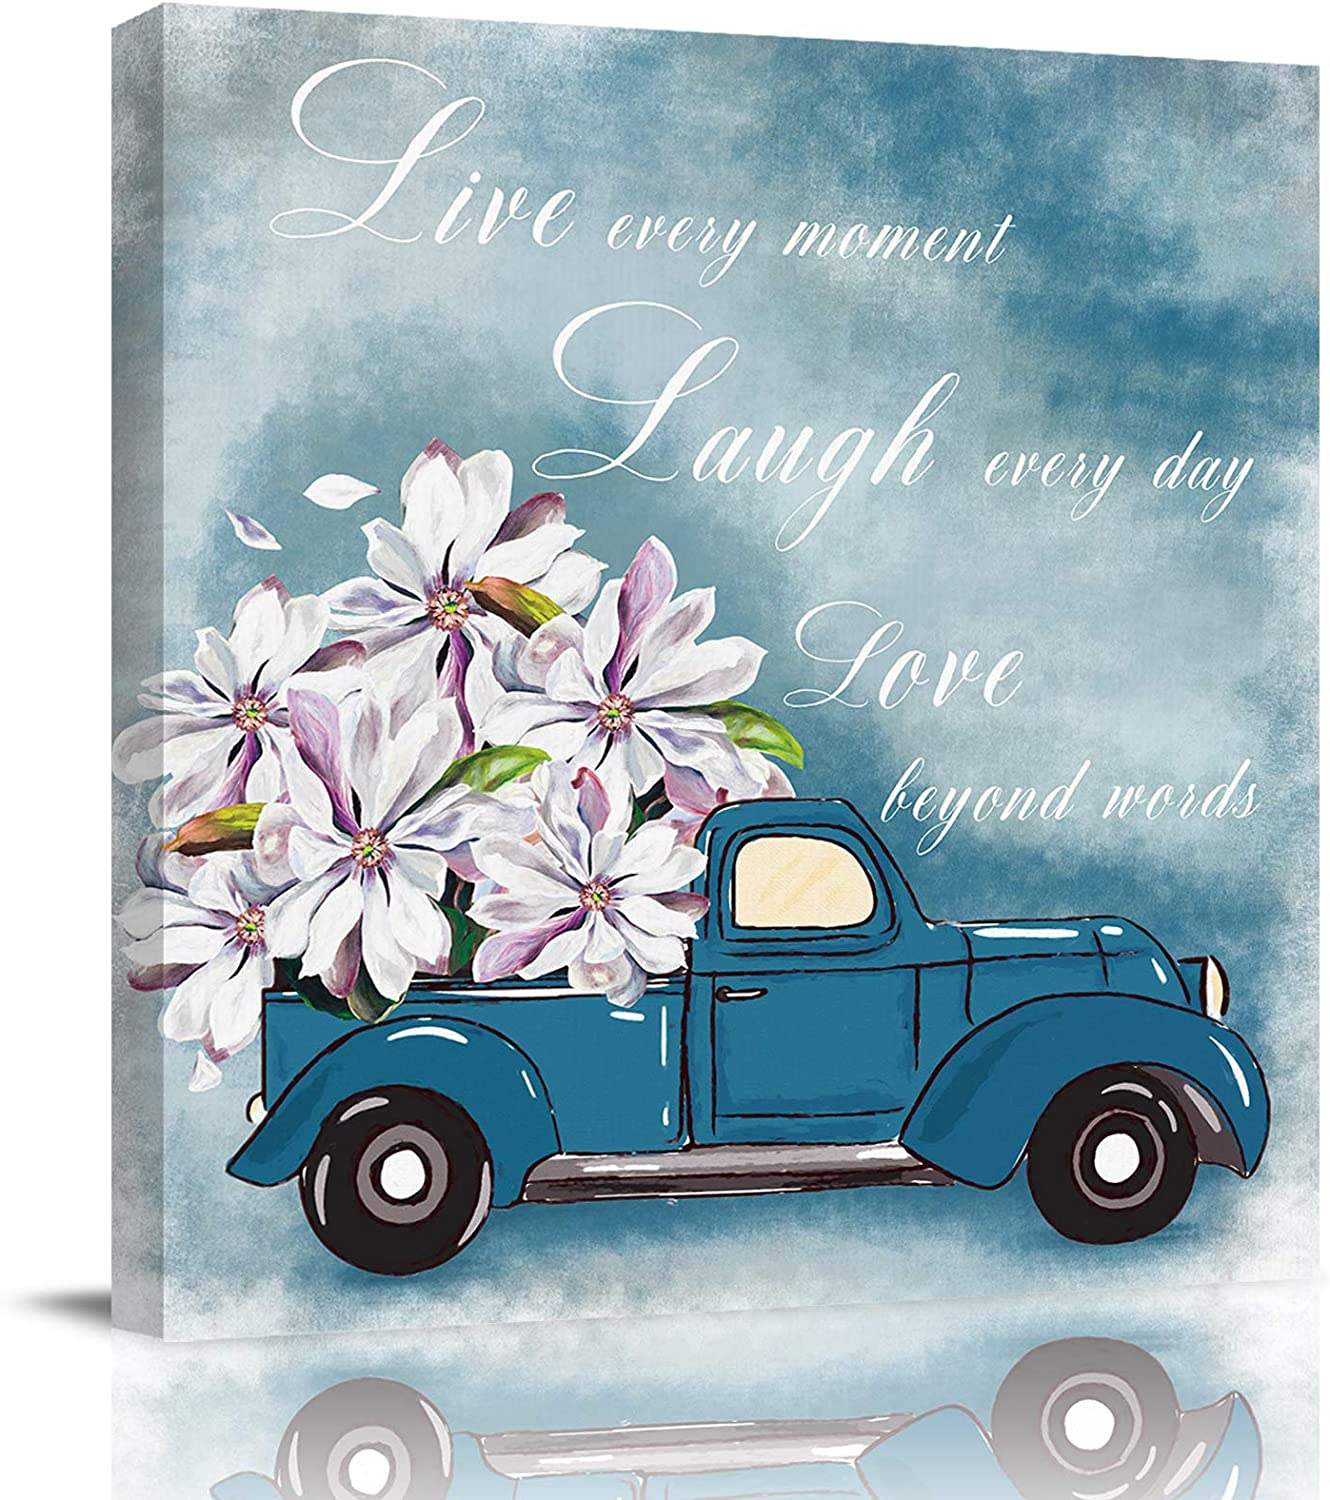 Bathroom Decor Canvas Wall Art, Blue Truck Carrying Pink Magnolia Flower Quotes Live Laugh Love Canvas Prints Gallery Artworks for Bedroom, Stretched and Framed Ready to Hang, 16x16 Inch Wall Decor